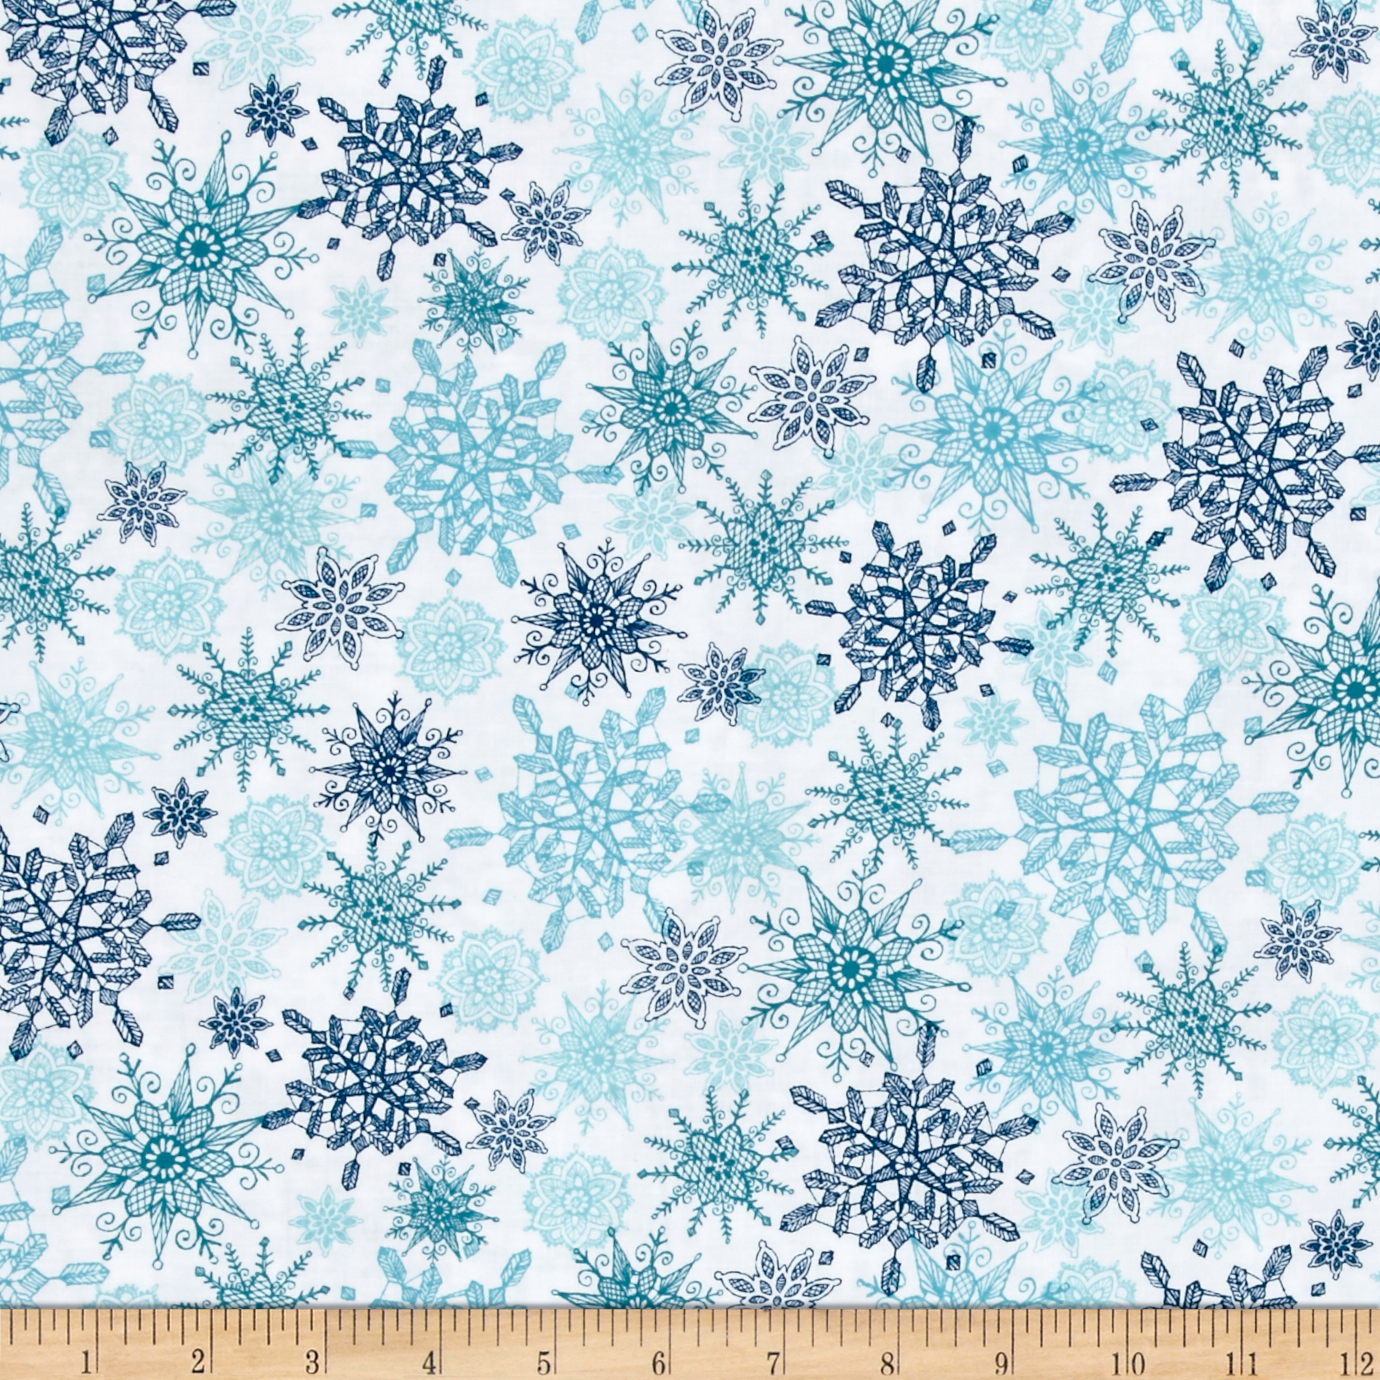 Winter Frost Snowflakes Aqua Fabric by Quilting Treasures in USA